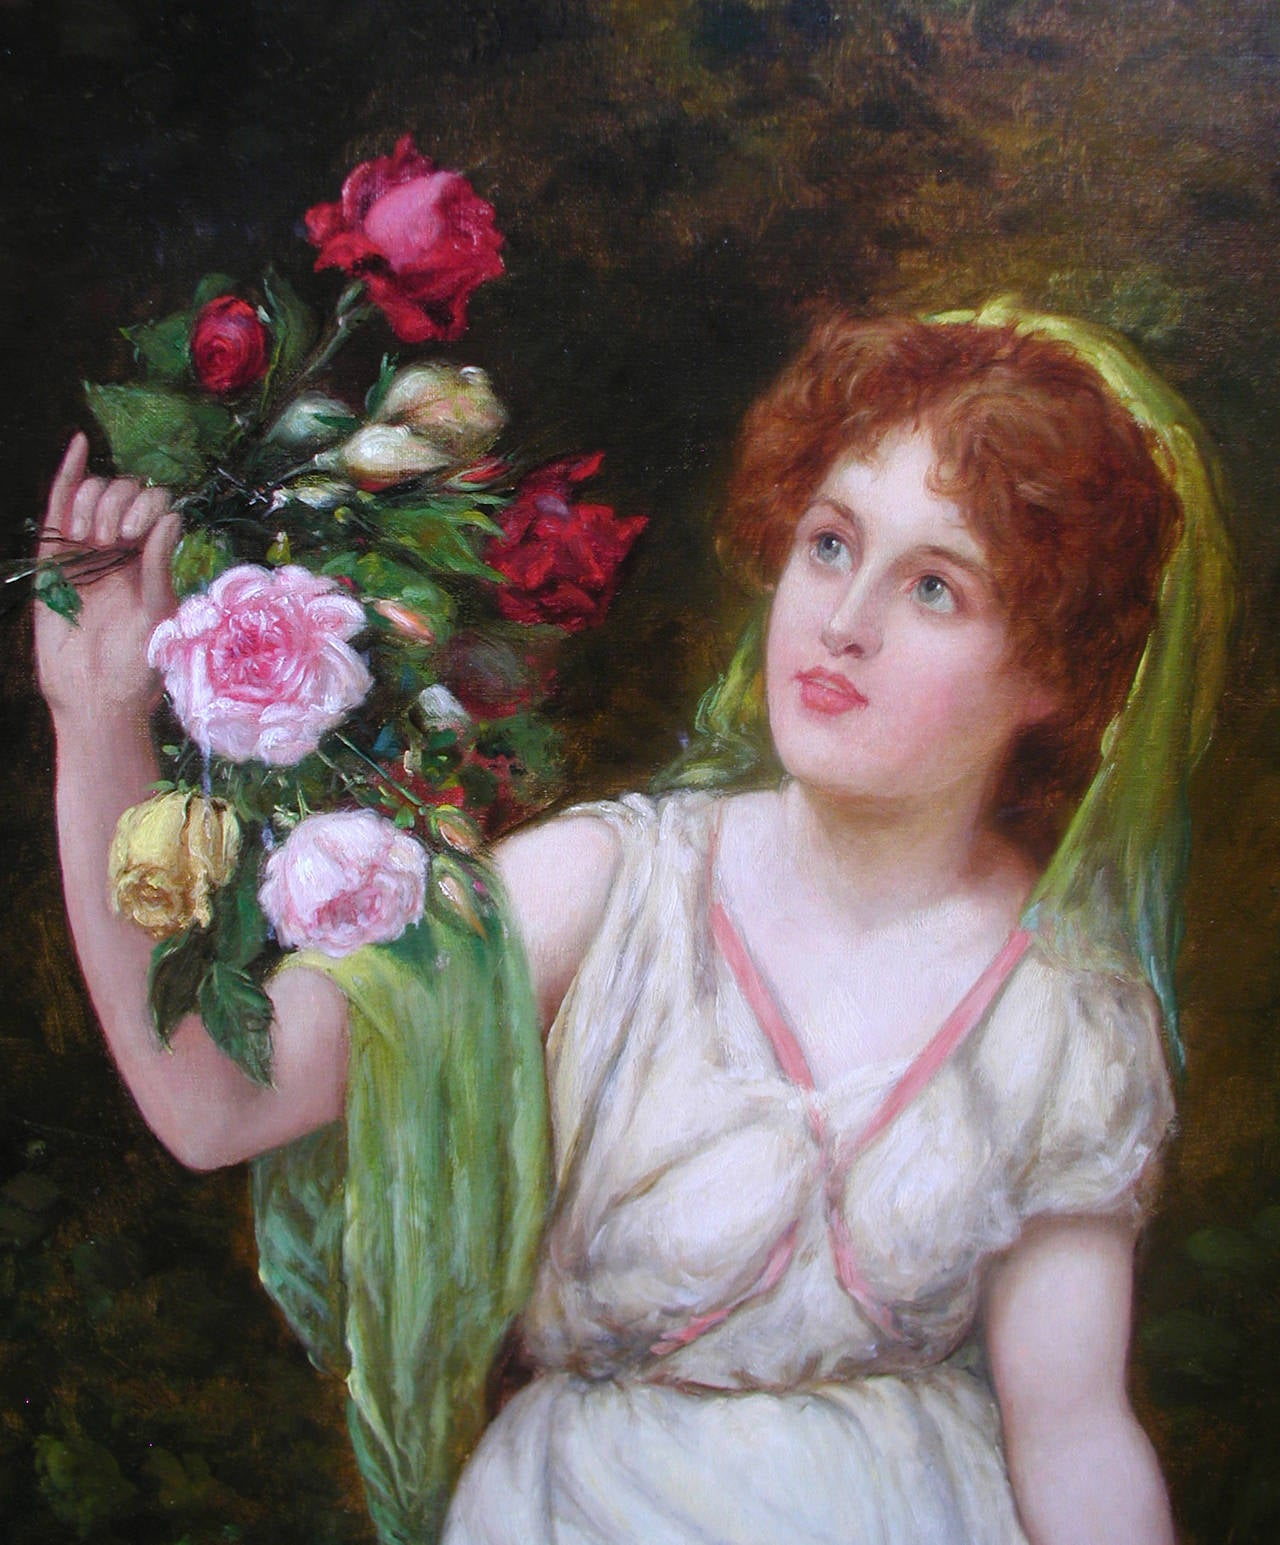 19th Century genre painting of a maiden holding flowers - Victorian Painting by William Oliver